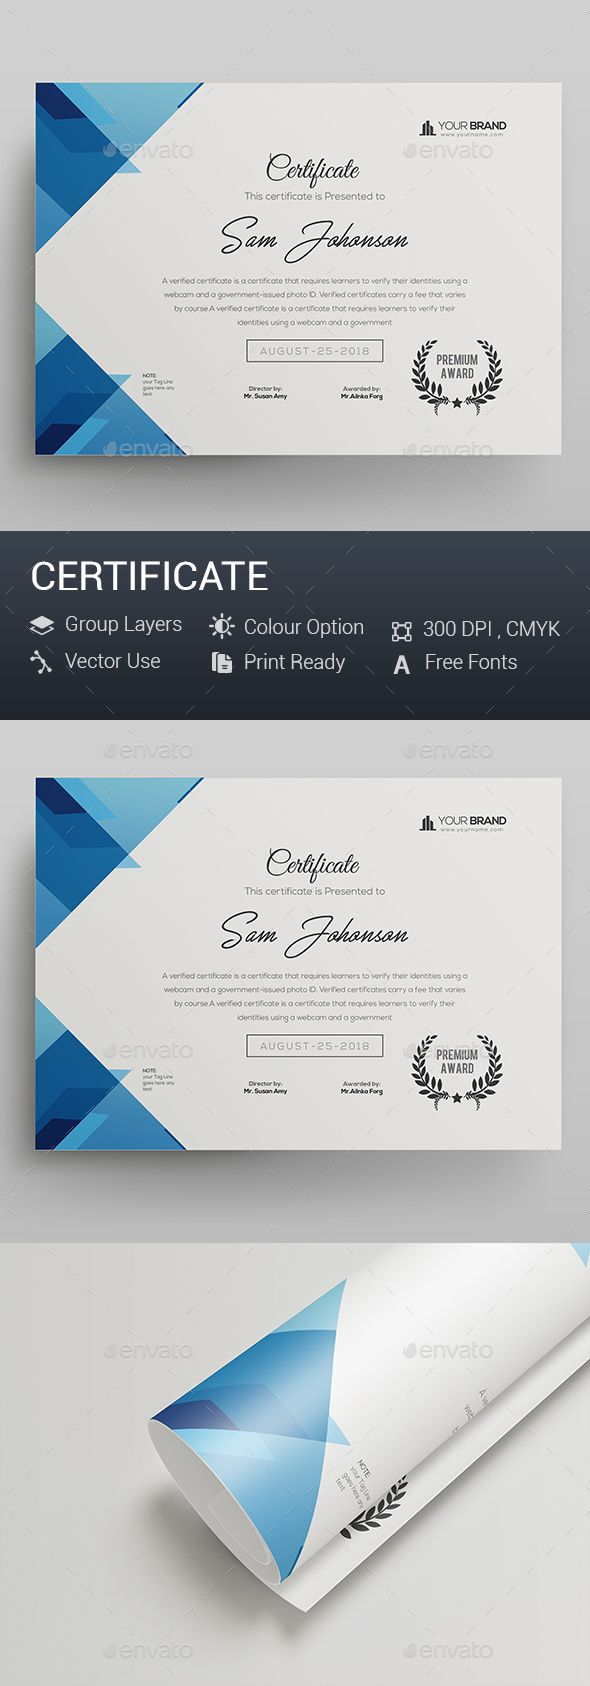 Certificate — Photoshop PSD #certificate design #standard • Download ➝ https://graphicriver.net/item/certificate/20263379?ref=pxcr